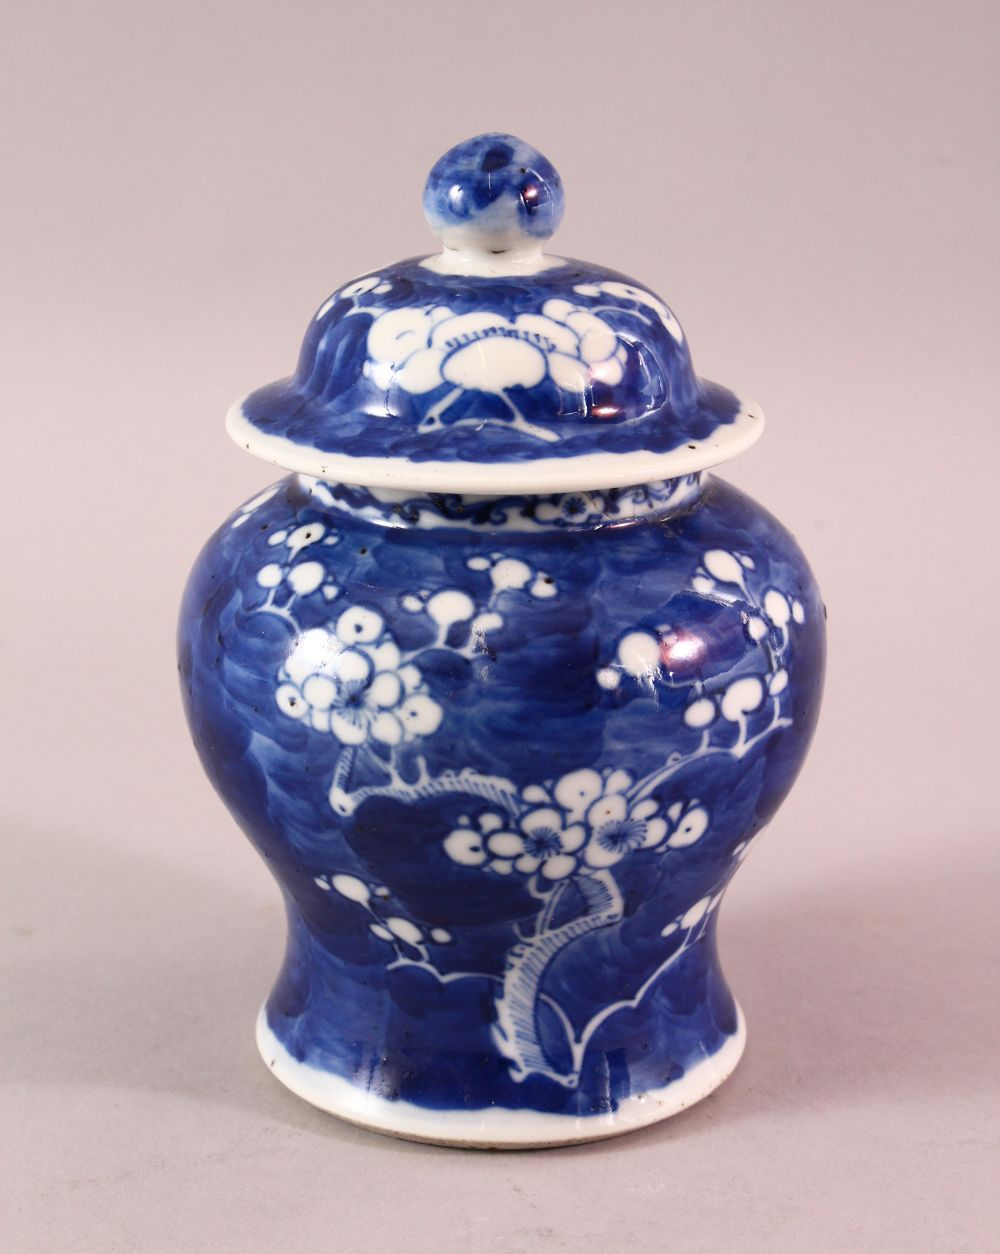 A 19TH / 20TH CENTURY CHINESE BLUE & WHITE PORCELAIN PRUNUS JAR & COVER, with prunus decoration,